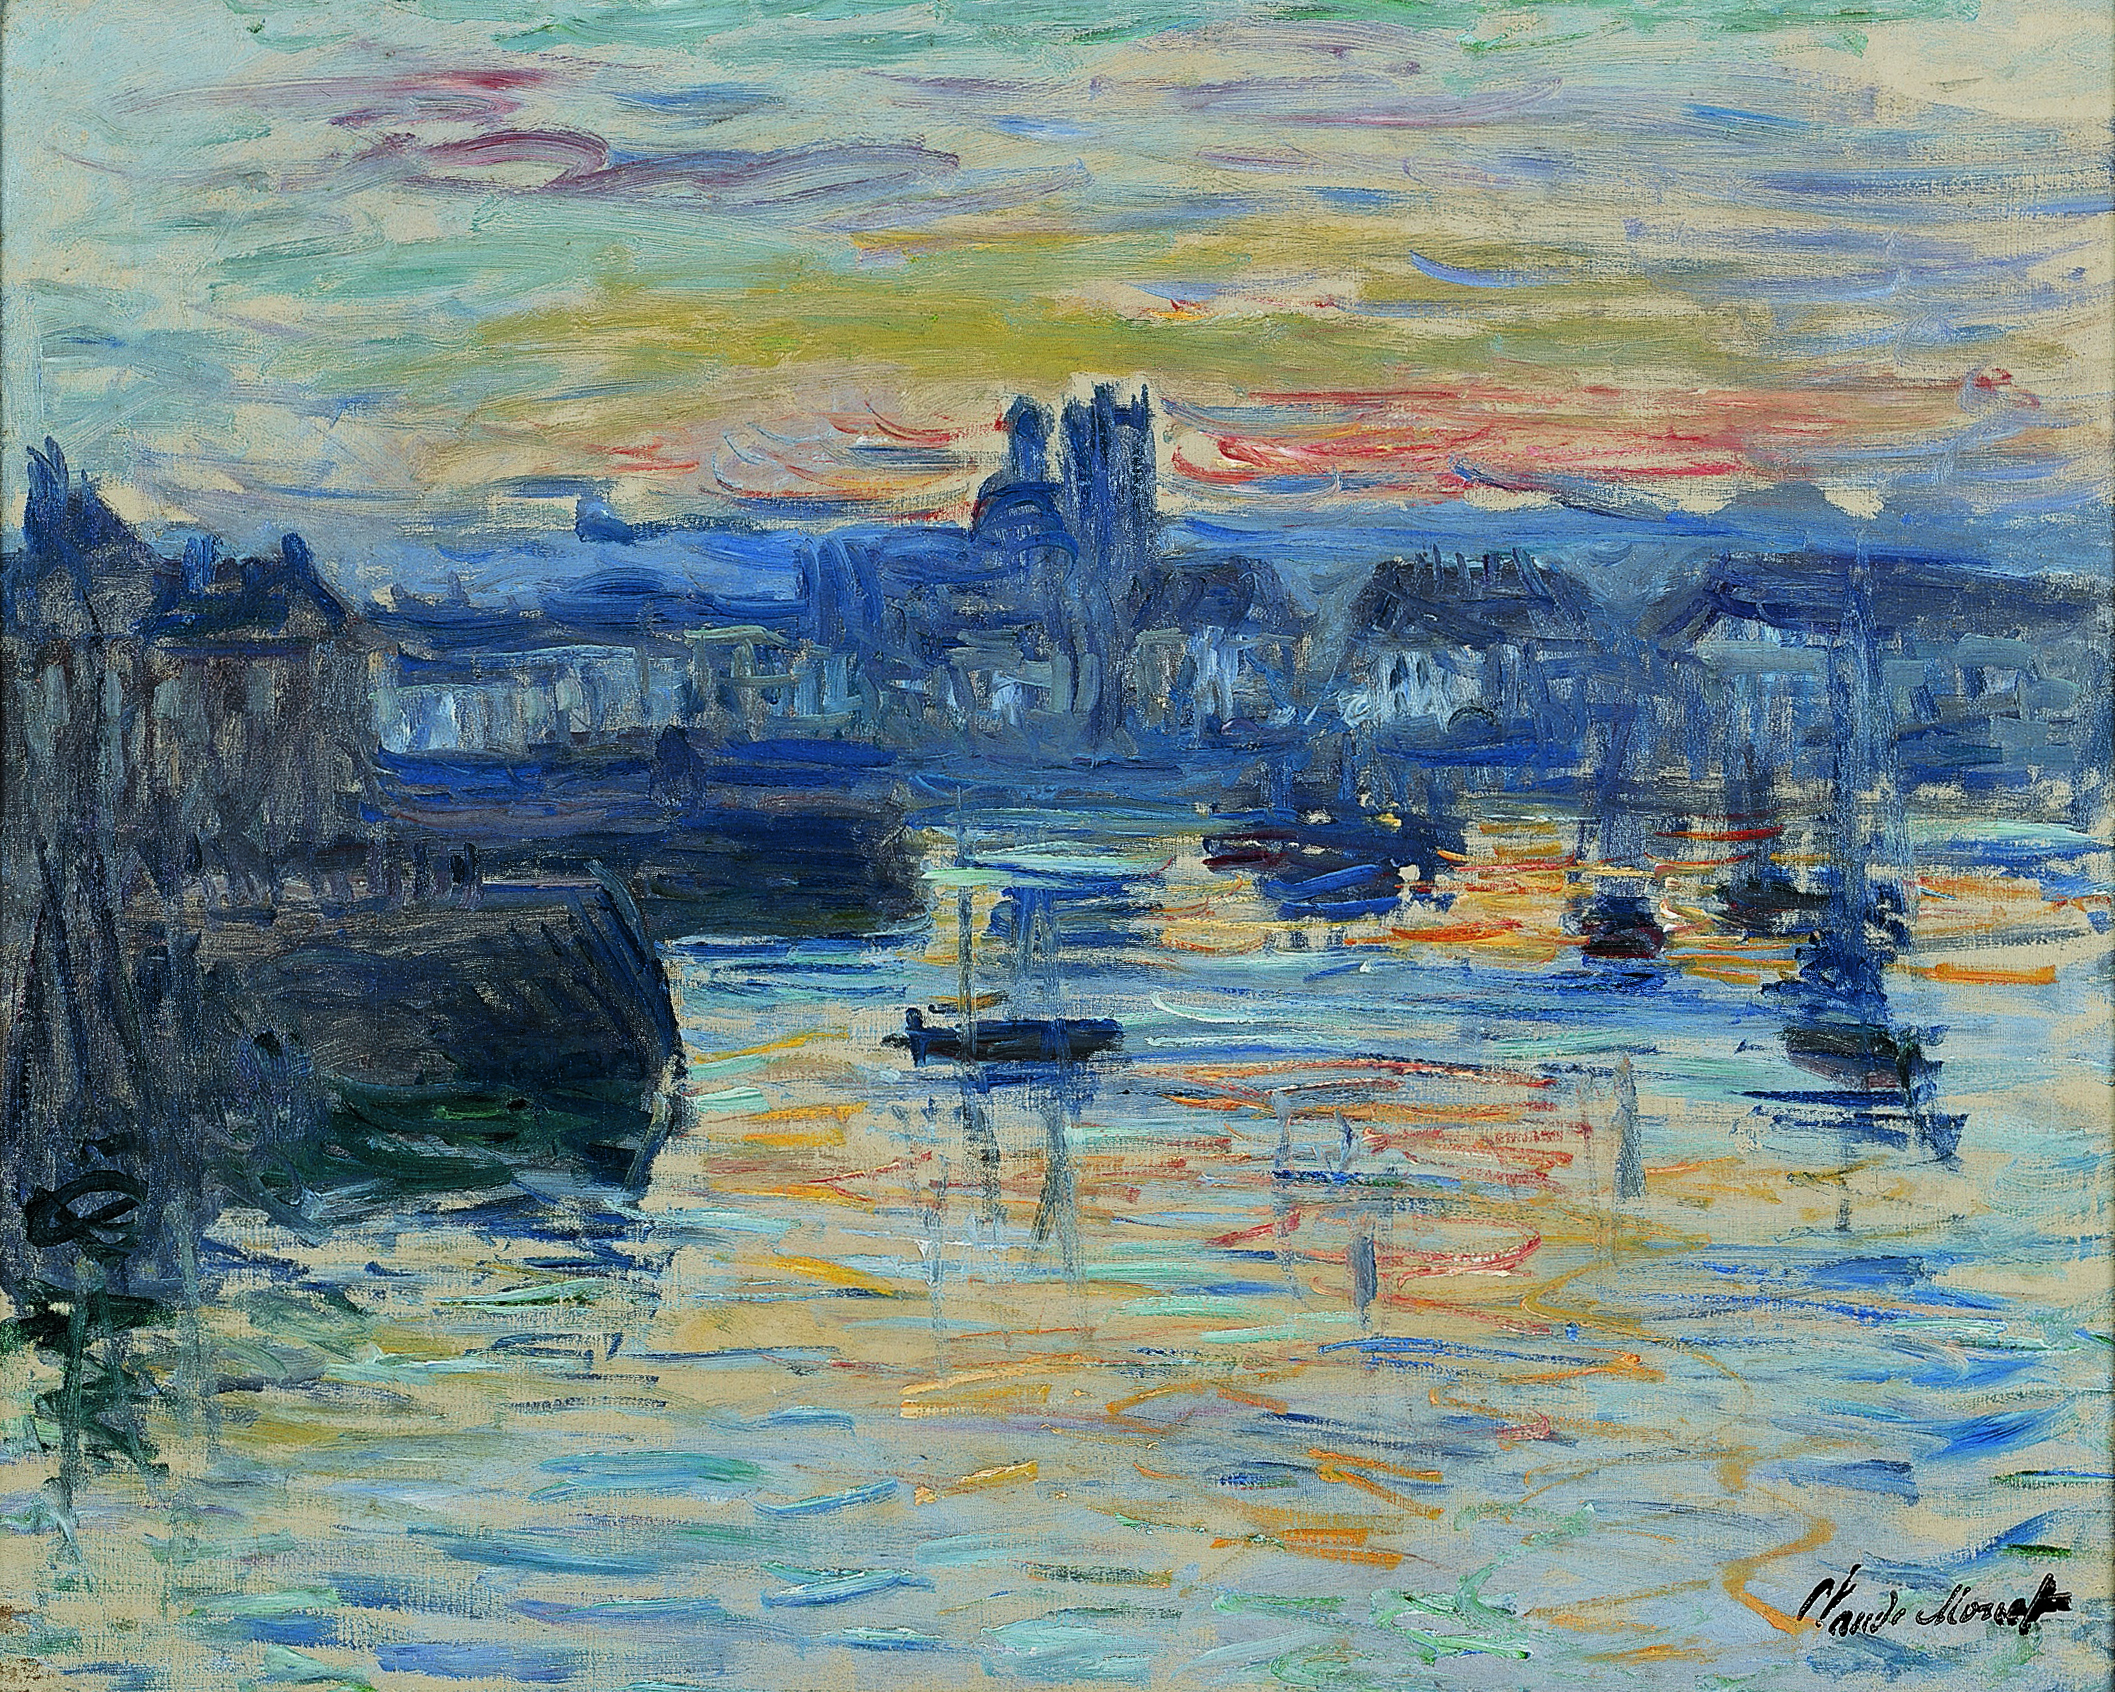 impressionism monet and renoir essay Renoir - renoir research papers analyze the impressionism of the famous painter claude monet - claude monet research papers delve into this impressionist painters style, and his life growing up.